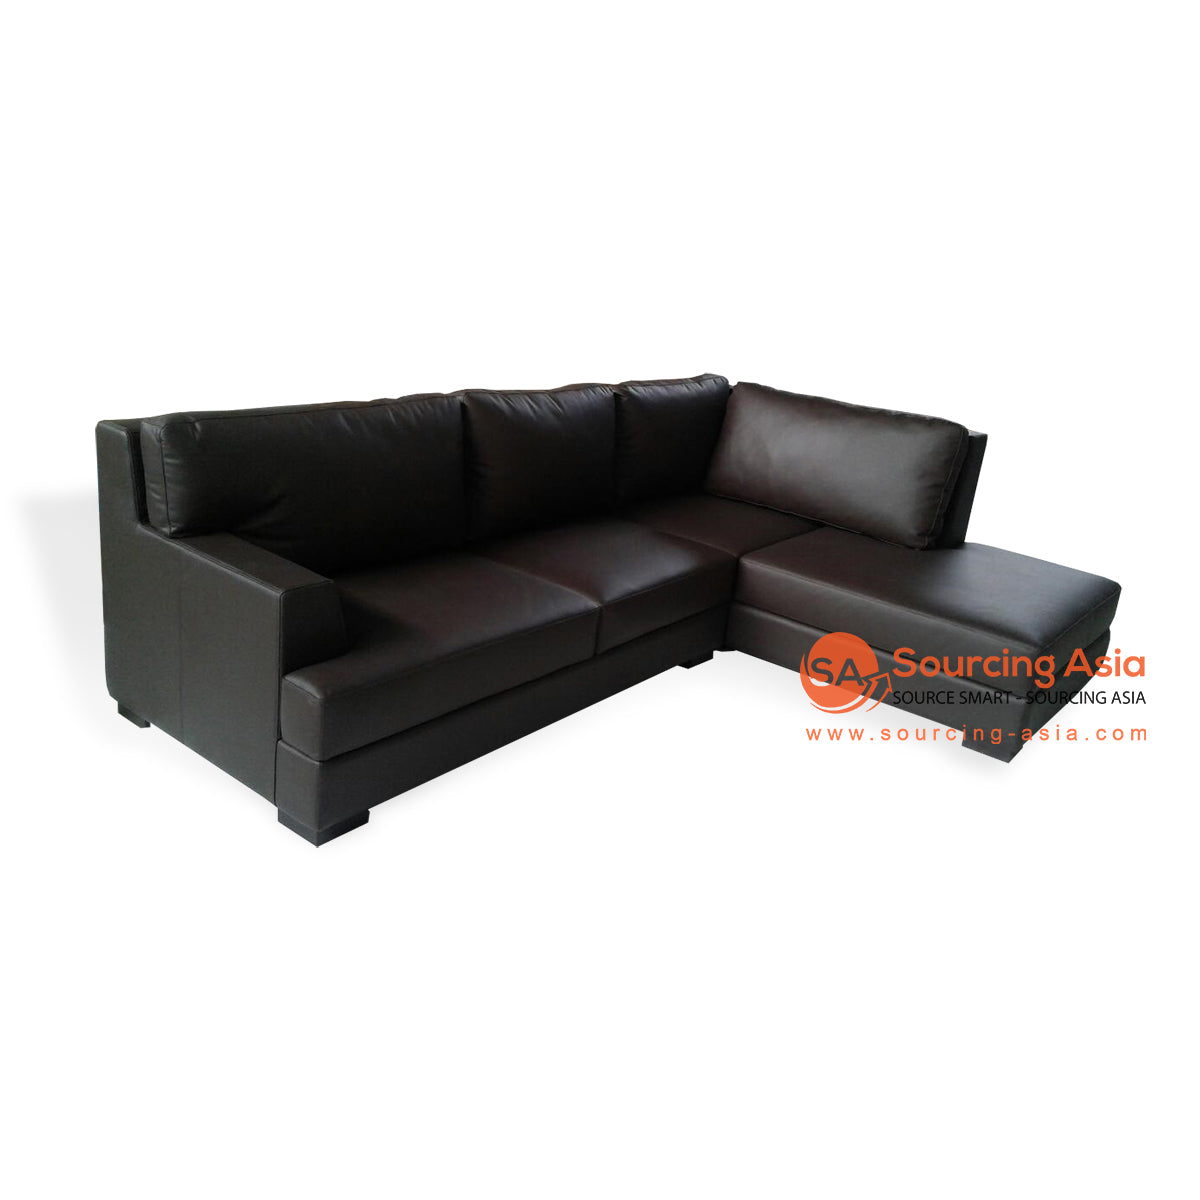 CCM018 LEATHER SOFA WITH CHAISE